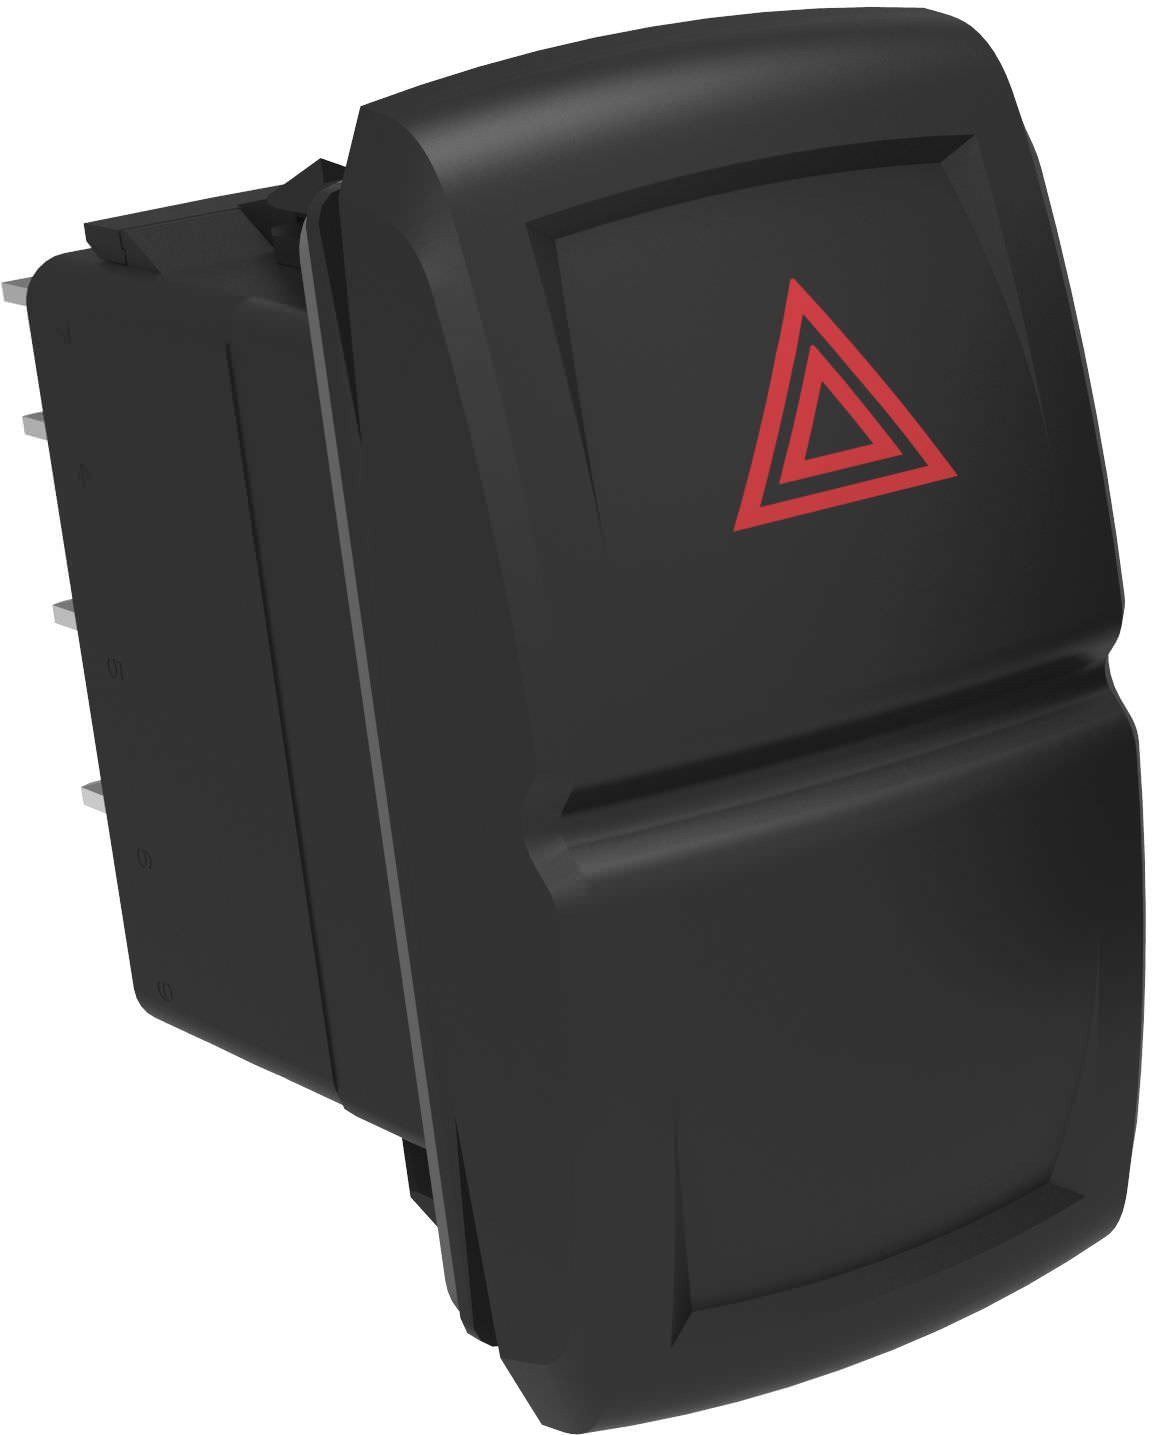 Rocker switch / single-pole / 2-pole / illuminated - V